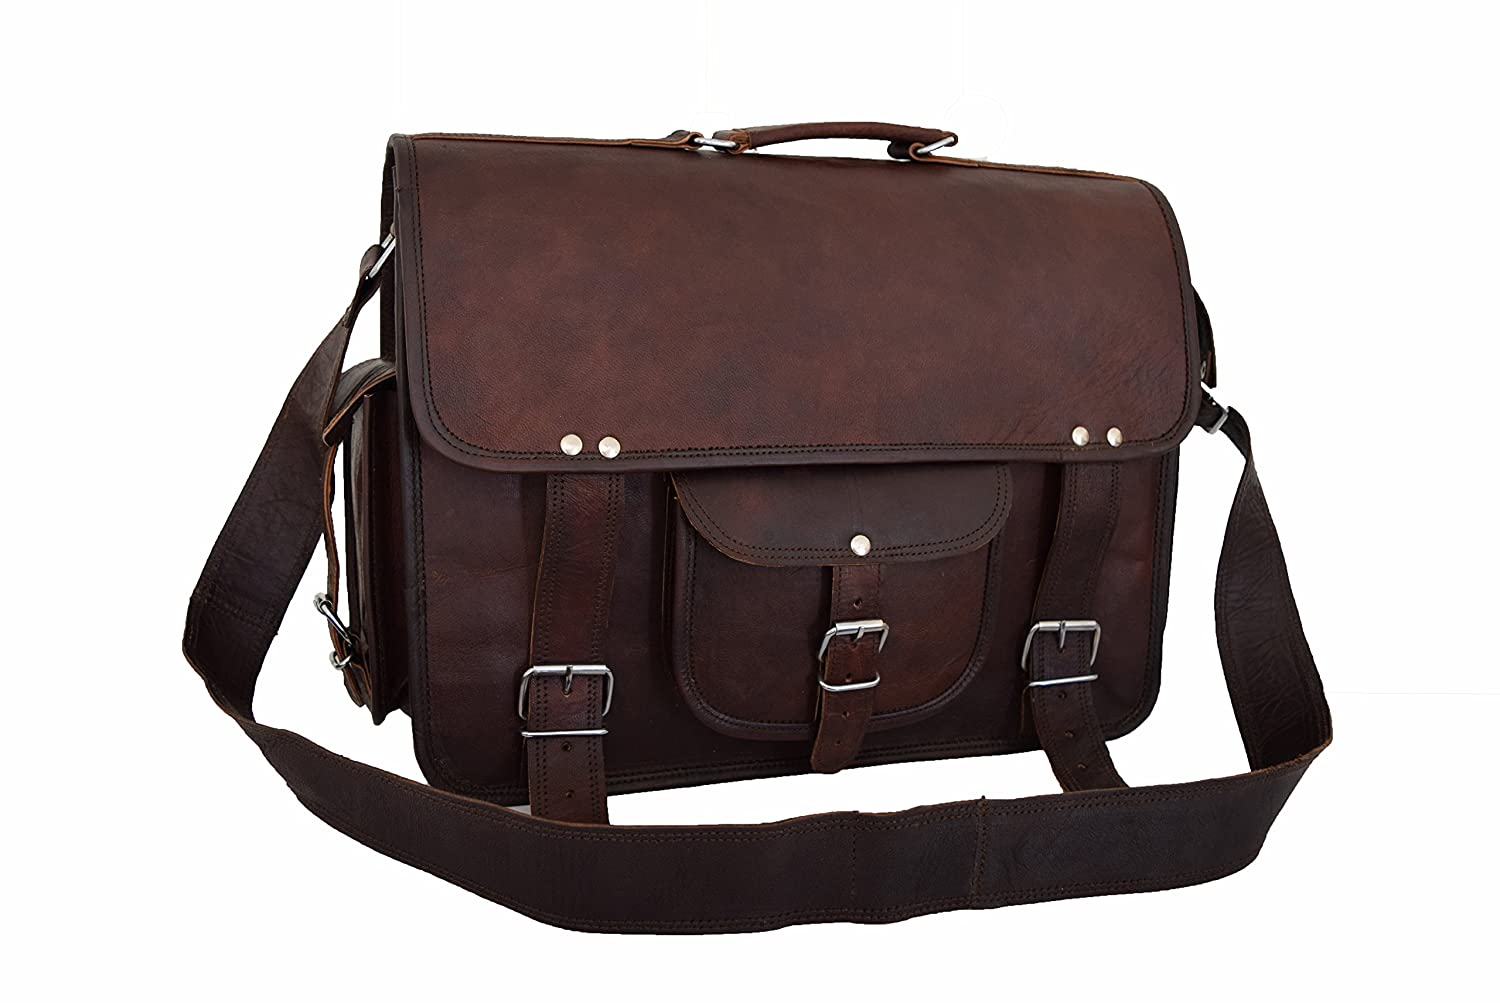 18 Inch Vintage Leather Handmade Leather Messenger Bag for Laptop Briefcase Best Computer Satchel School Distressed Leather Bag